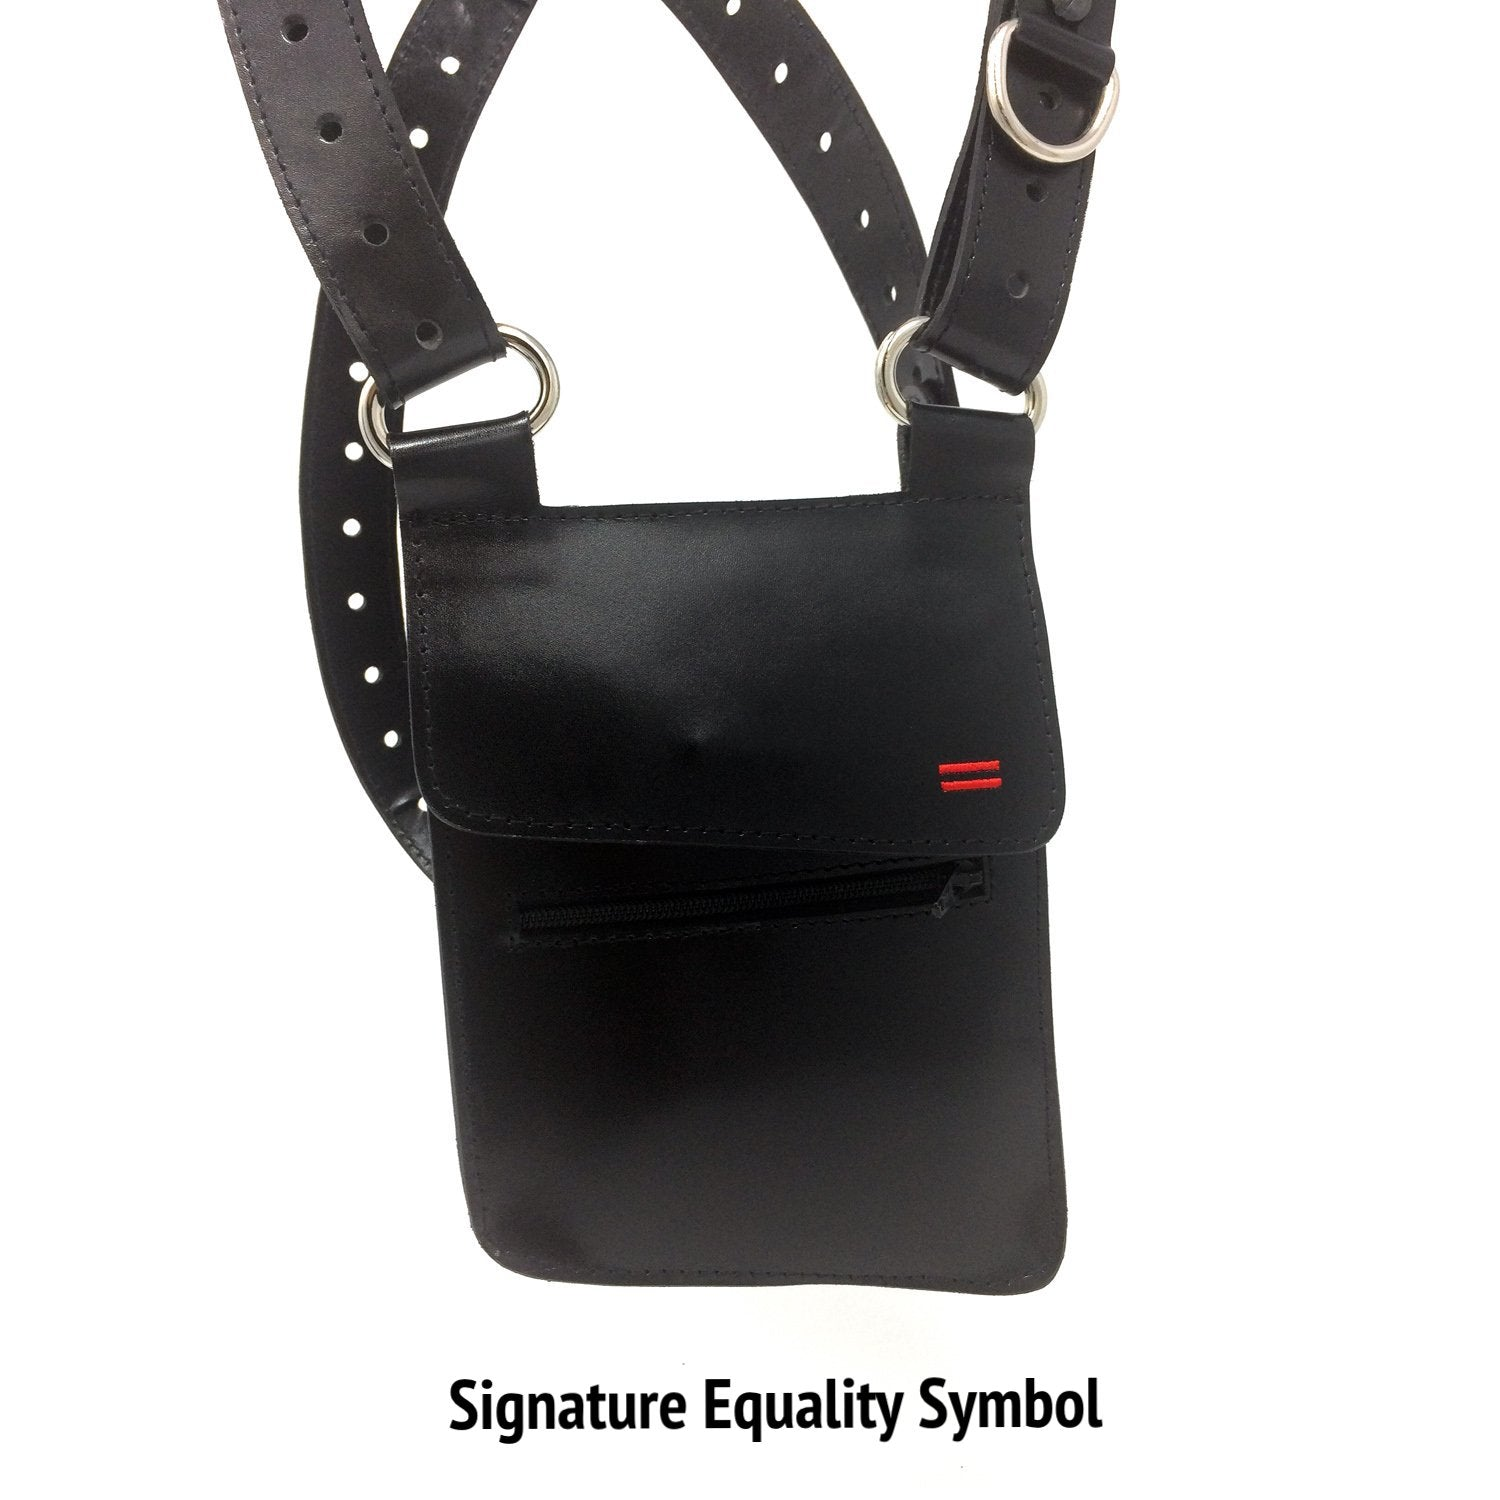 Genderfree Modular + Adjustable Utility Holster Harness with Wallet (Single or Dual) - NiK Kacy